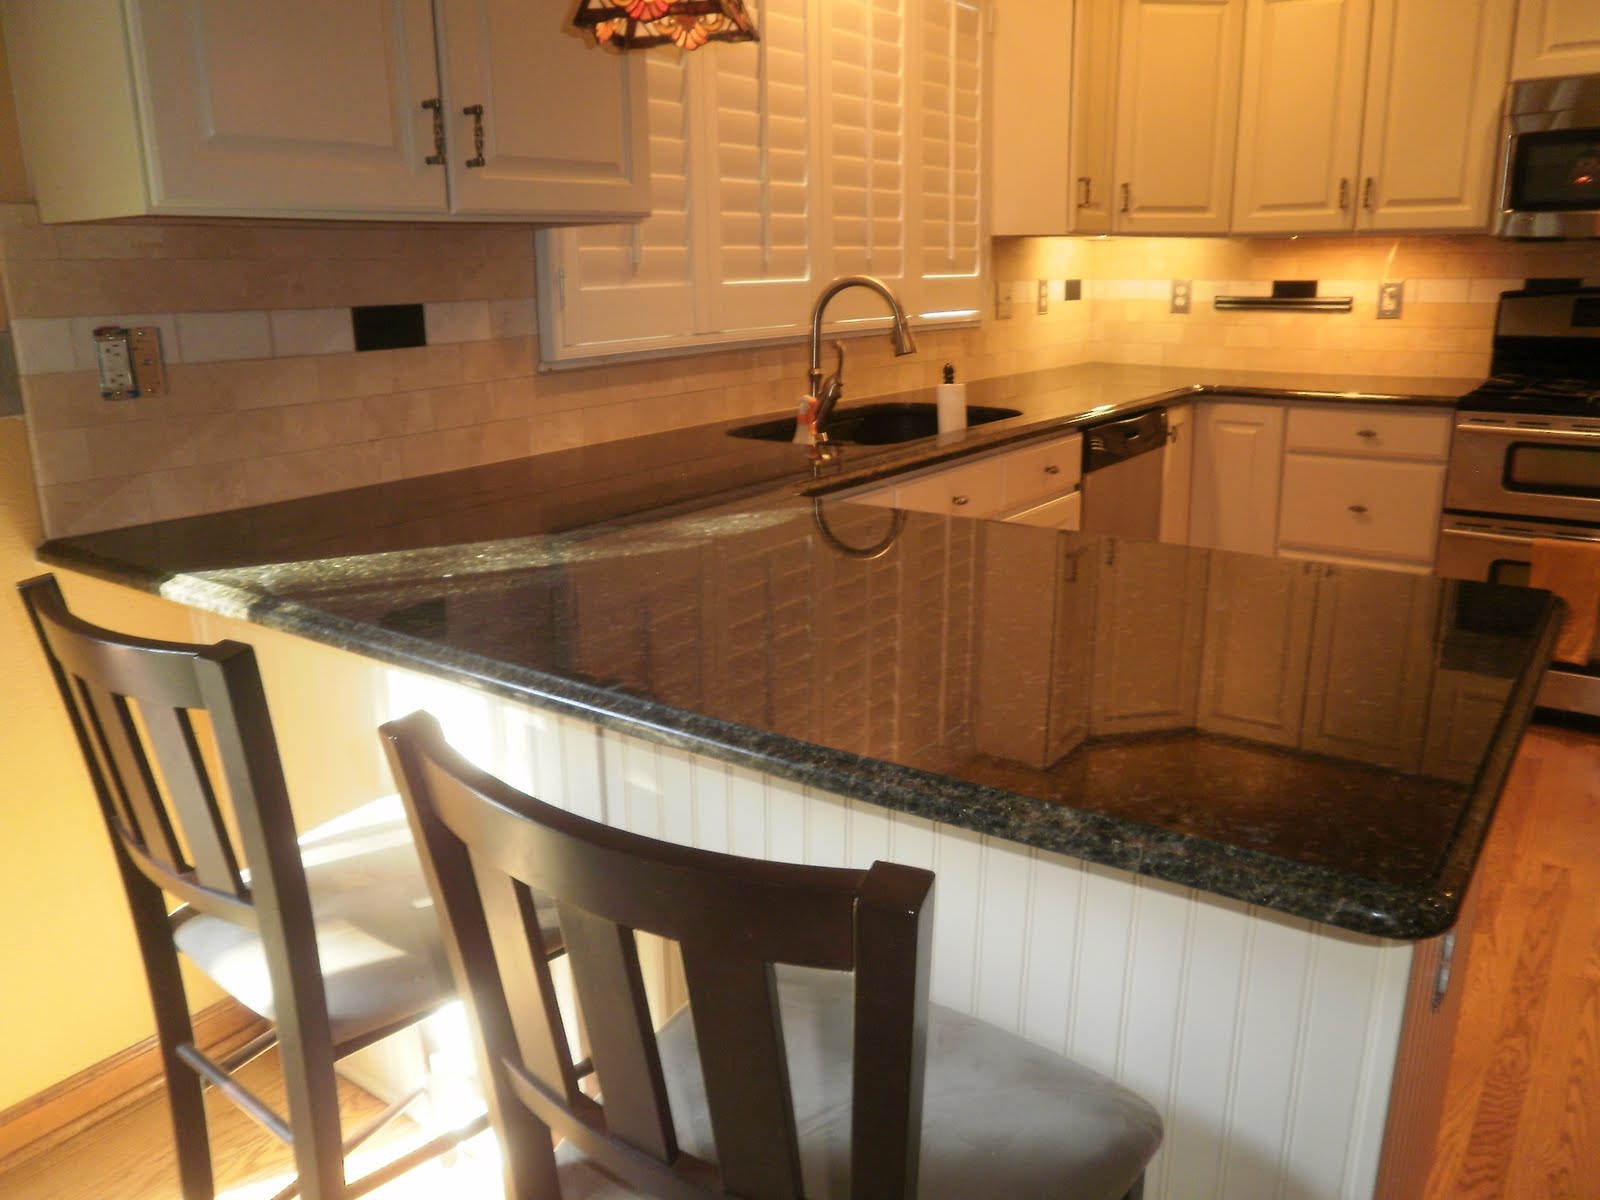 Backsplash With Uba Tuba Granite Countertop Integrity Installations A Division Of Front